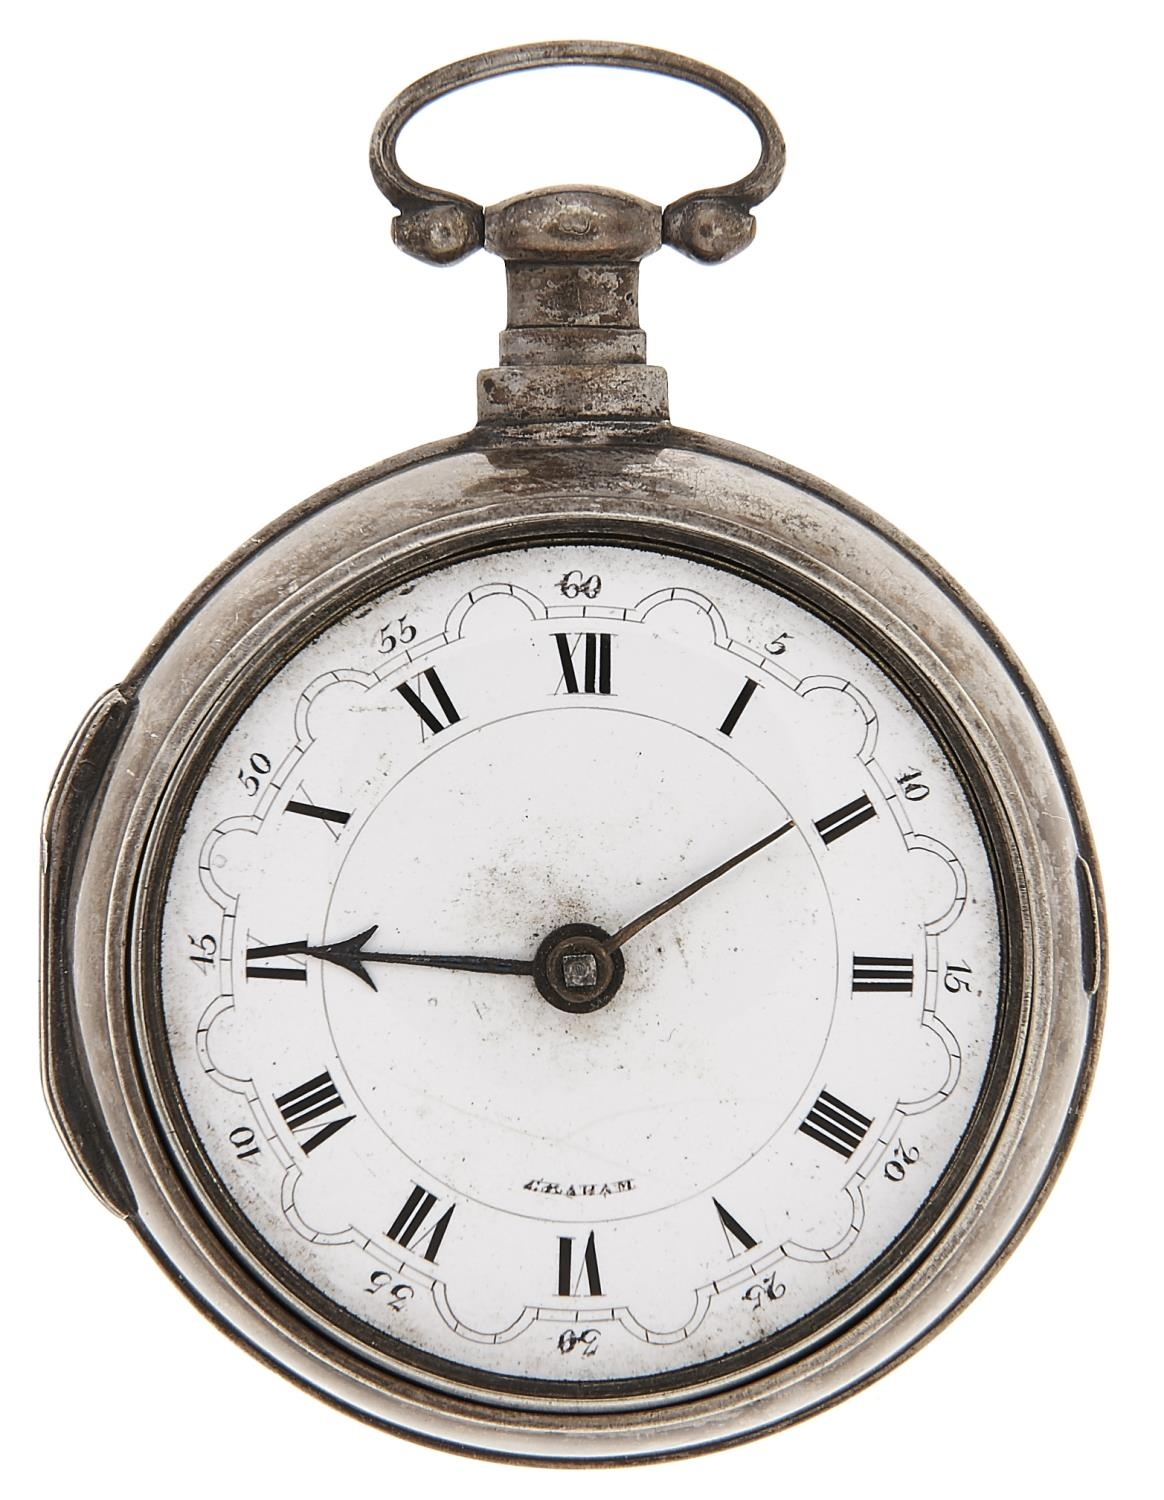 A silver pair cased verge watch, late 18th c, with Continental style dial and bridge balance, both